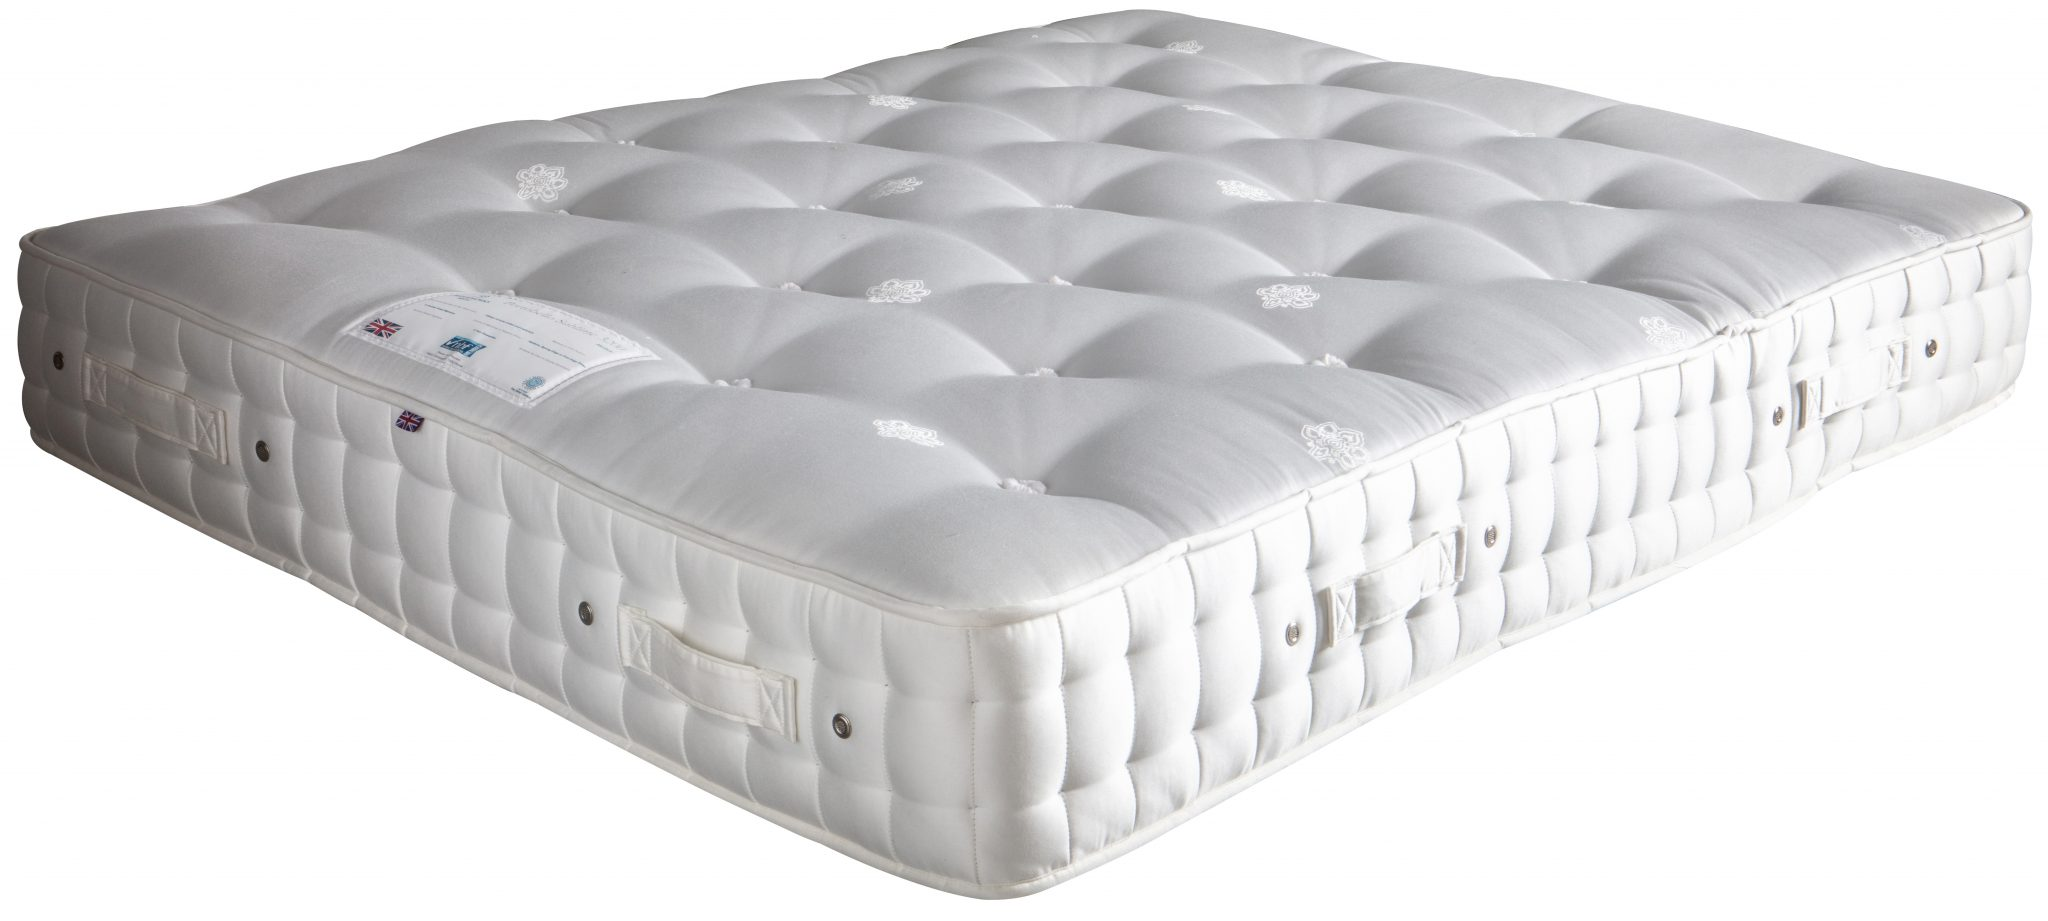 Image of Cashmere Luxe 3200 Pocket Sprung Mattress - Double (Tension: Firm)